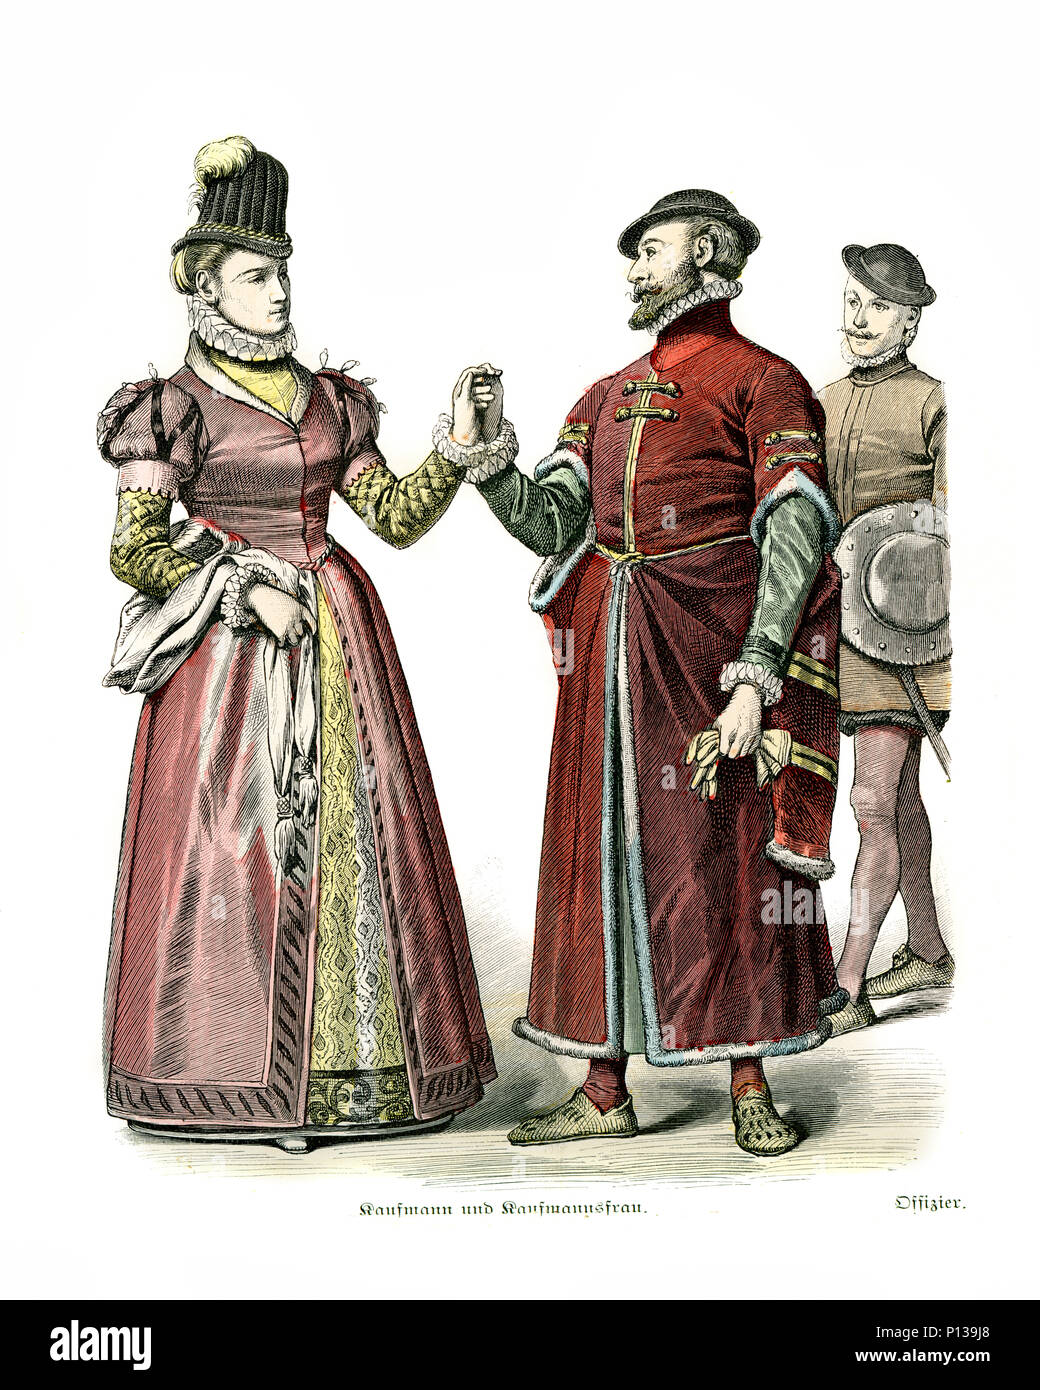 Vintage engraving of History of Fashion, Costumes of England, 16th Century.  London Merchant and wife, Officer, 1590 - Stock Image